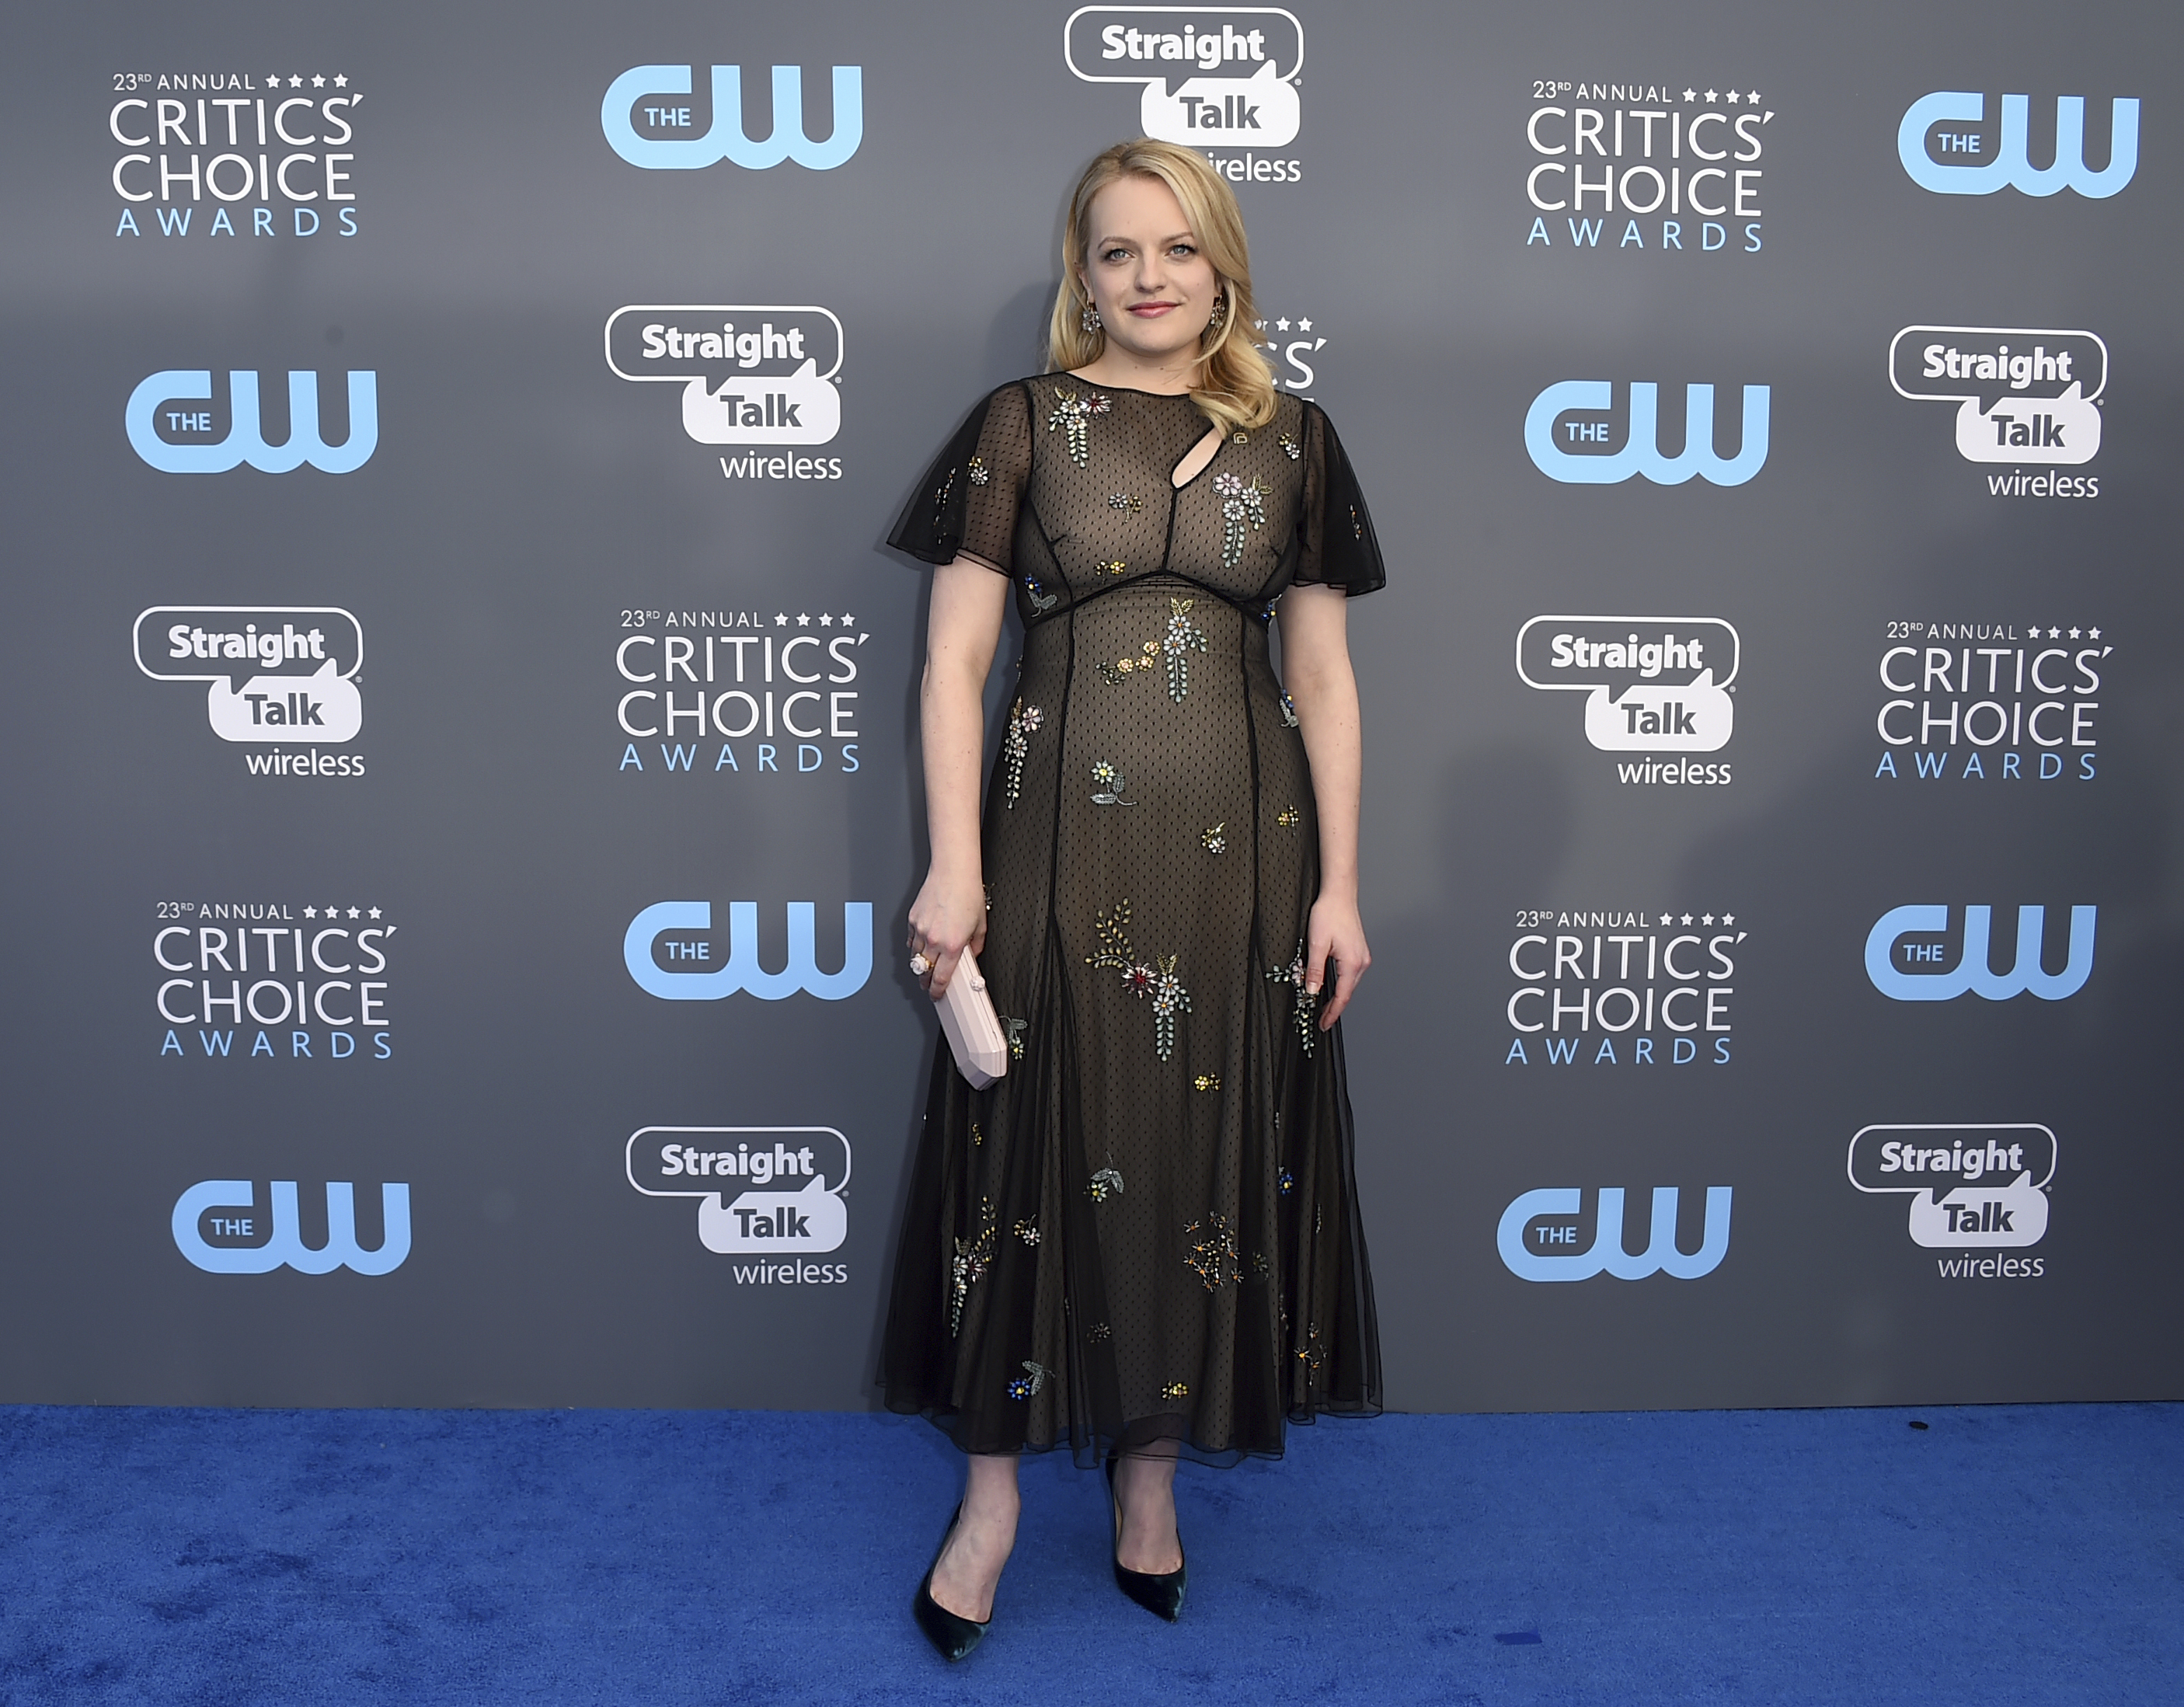 Elisabeth Moss at the ceremony (Jordan Strauss/Invision/AP)